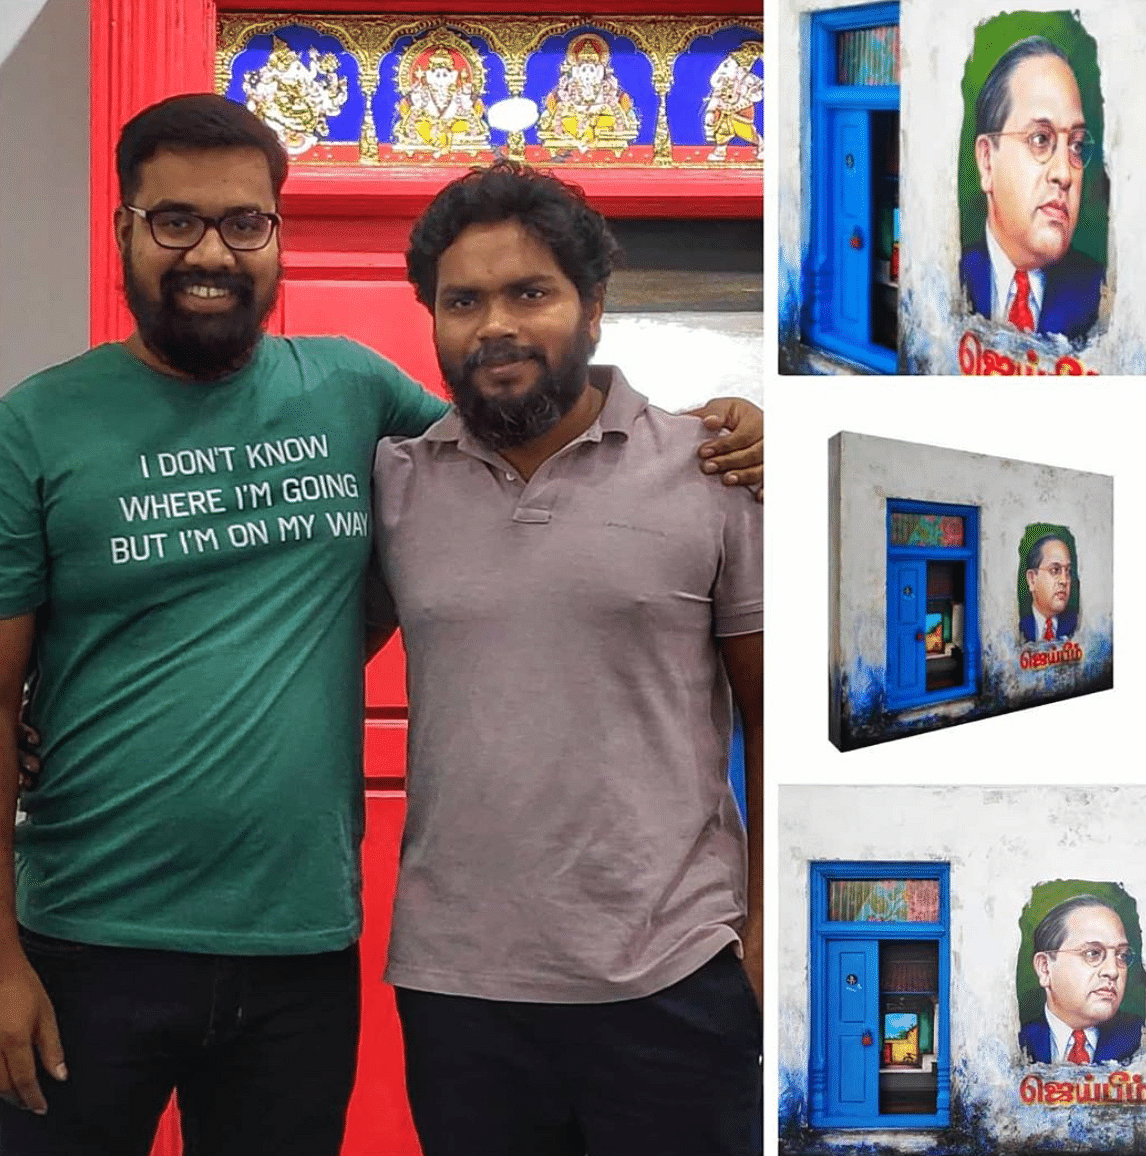 A personalised blue door for director Pa Ranjith.